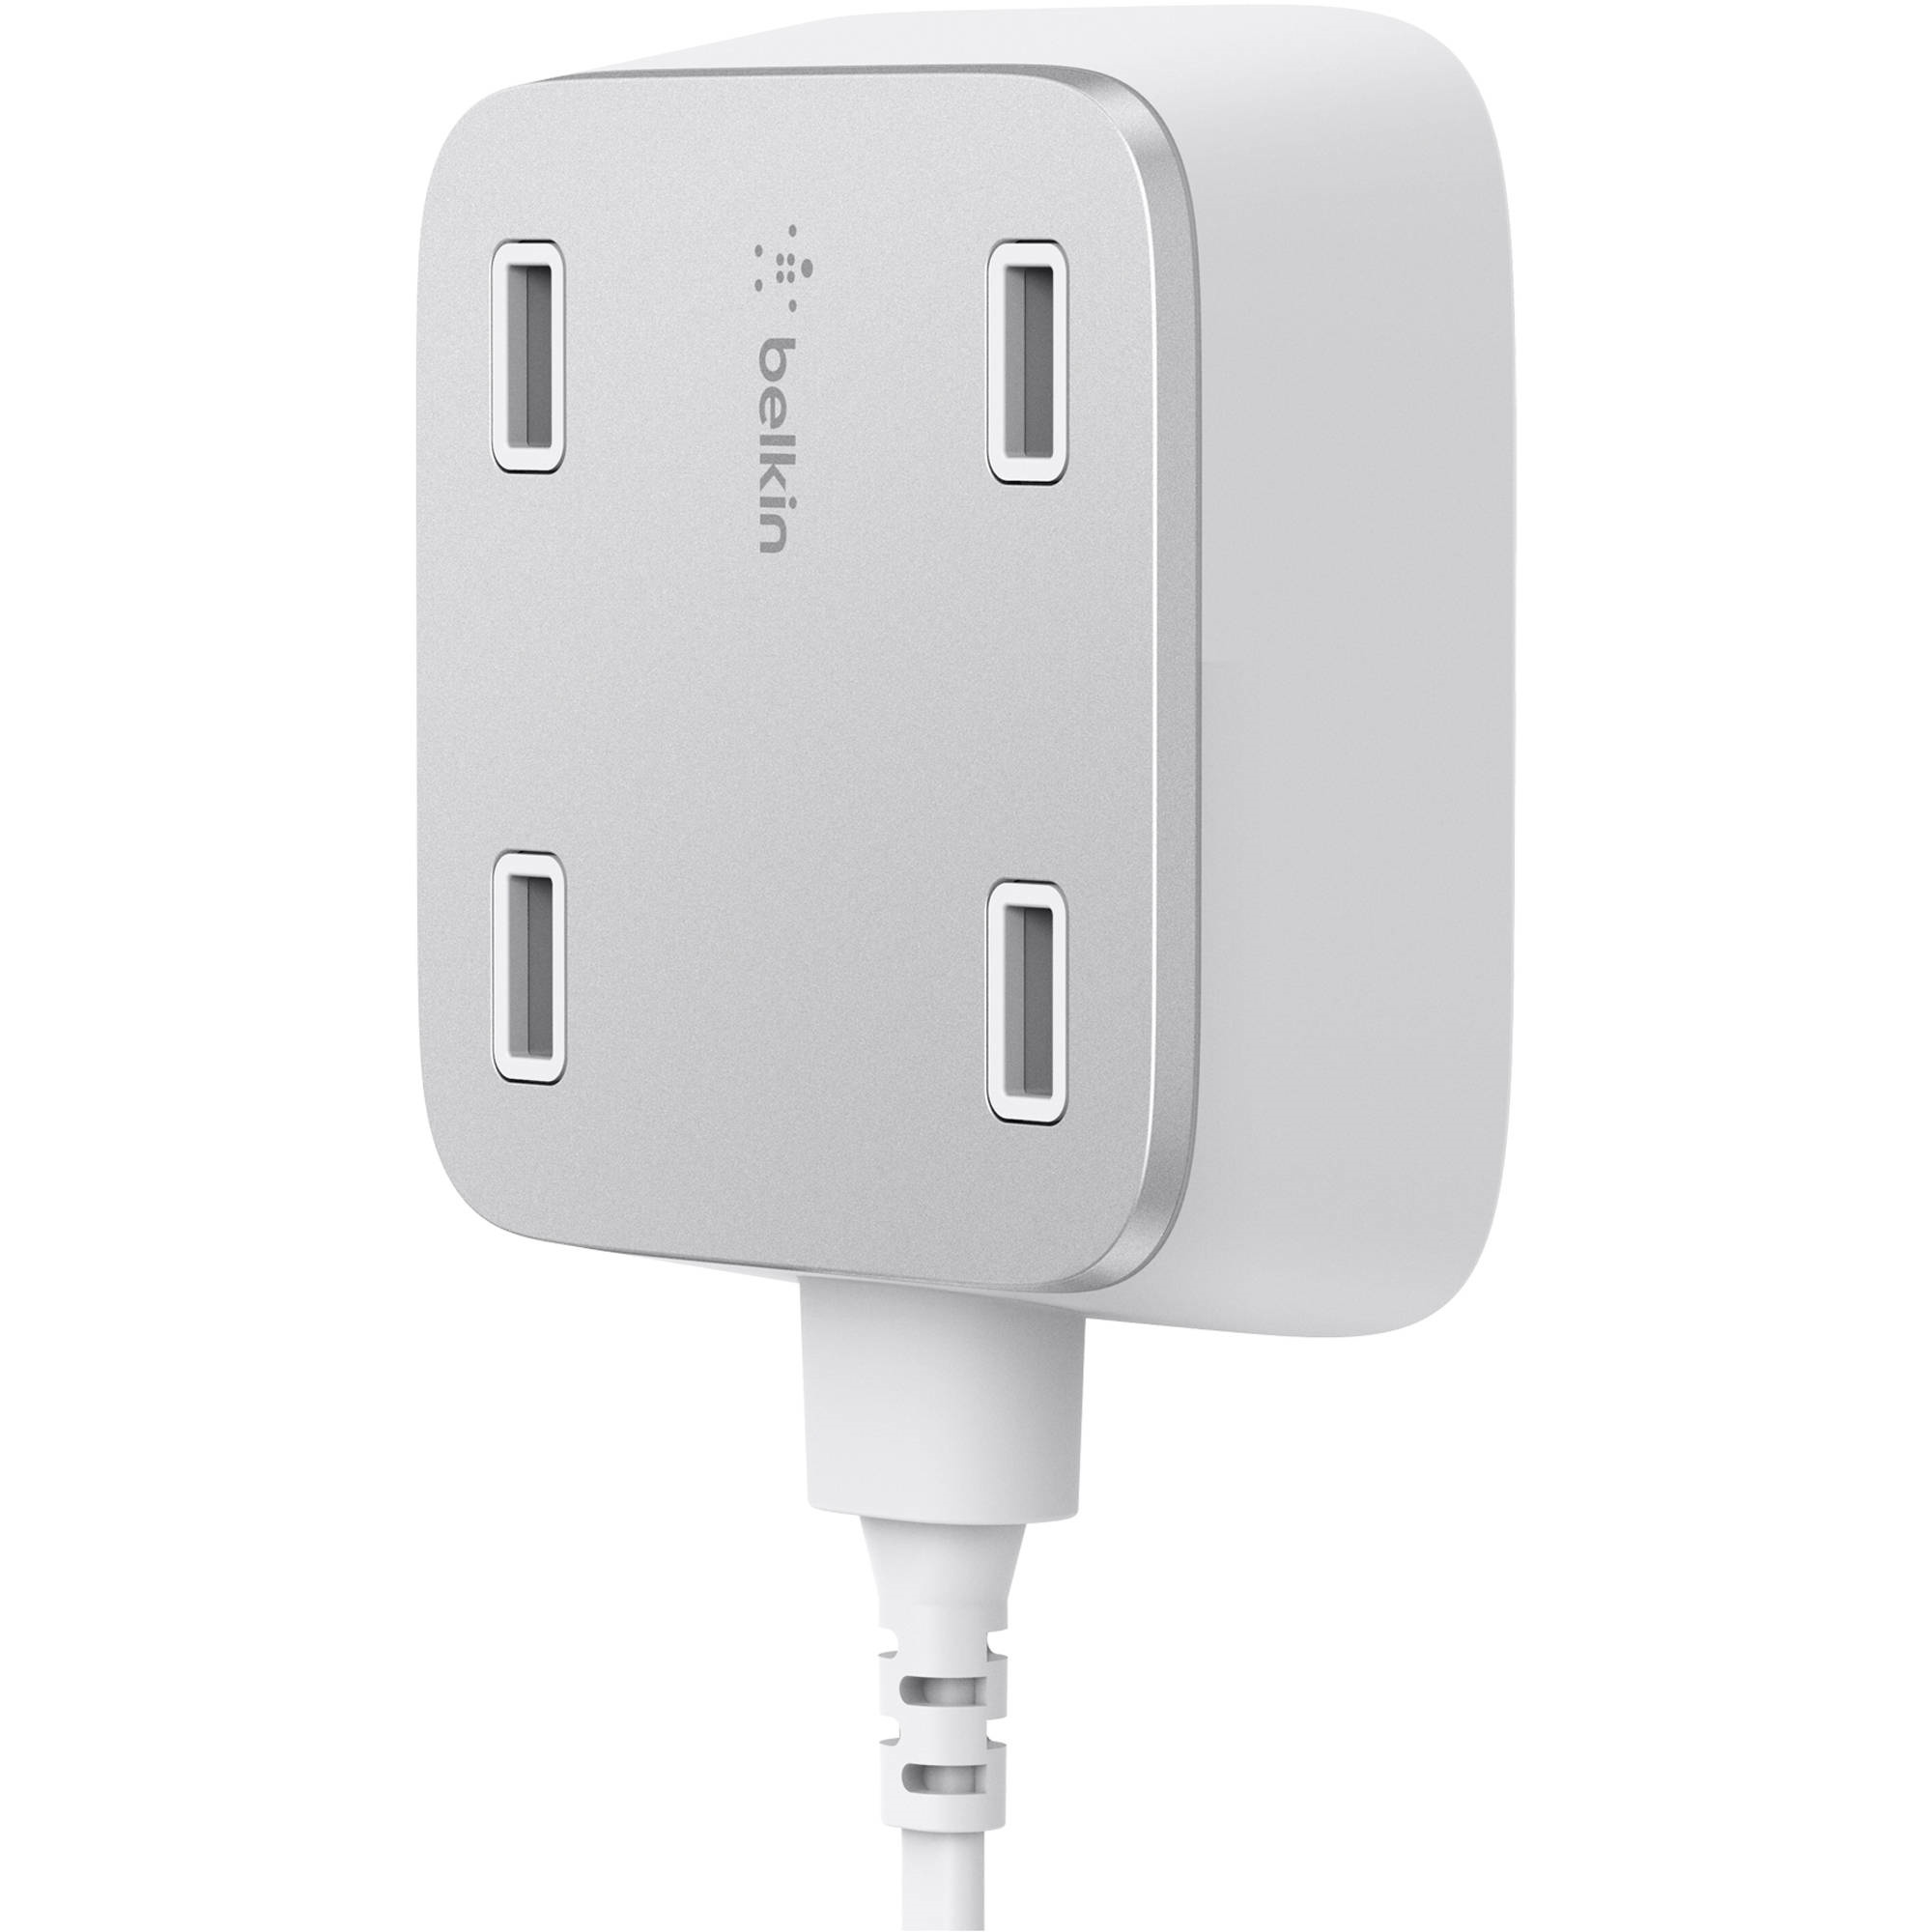 Belkin Family RockStar 4-Port USB Charger (White)